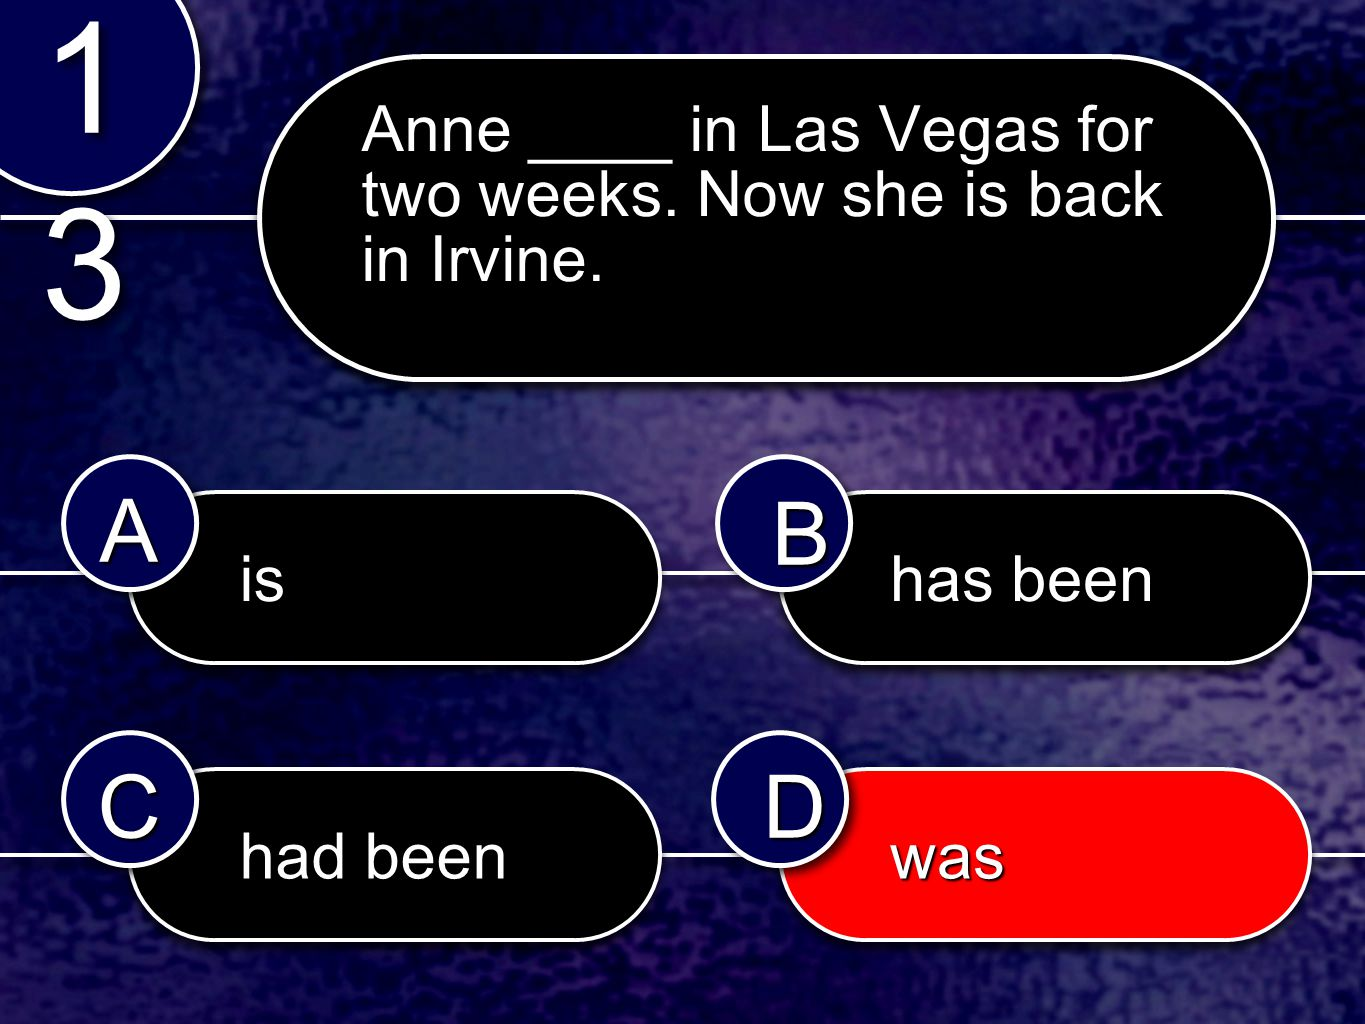 isis waswas had been has been 1313 1313 AABB CCDD Anne ____ in Las Vegas for two weeks.